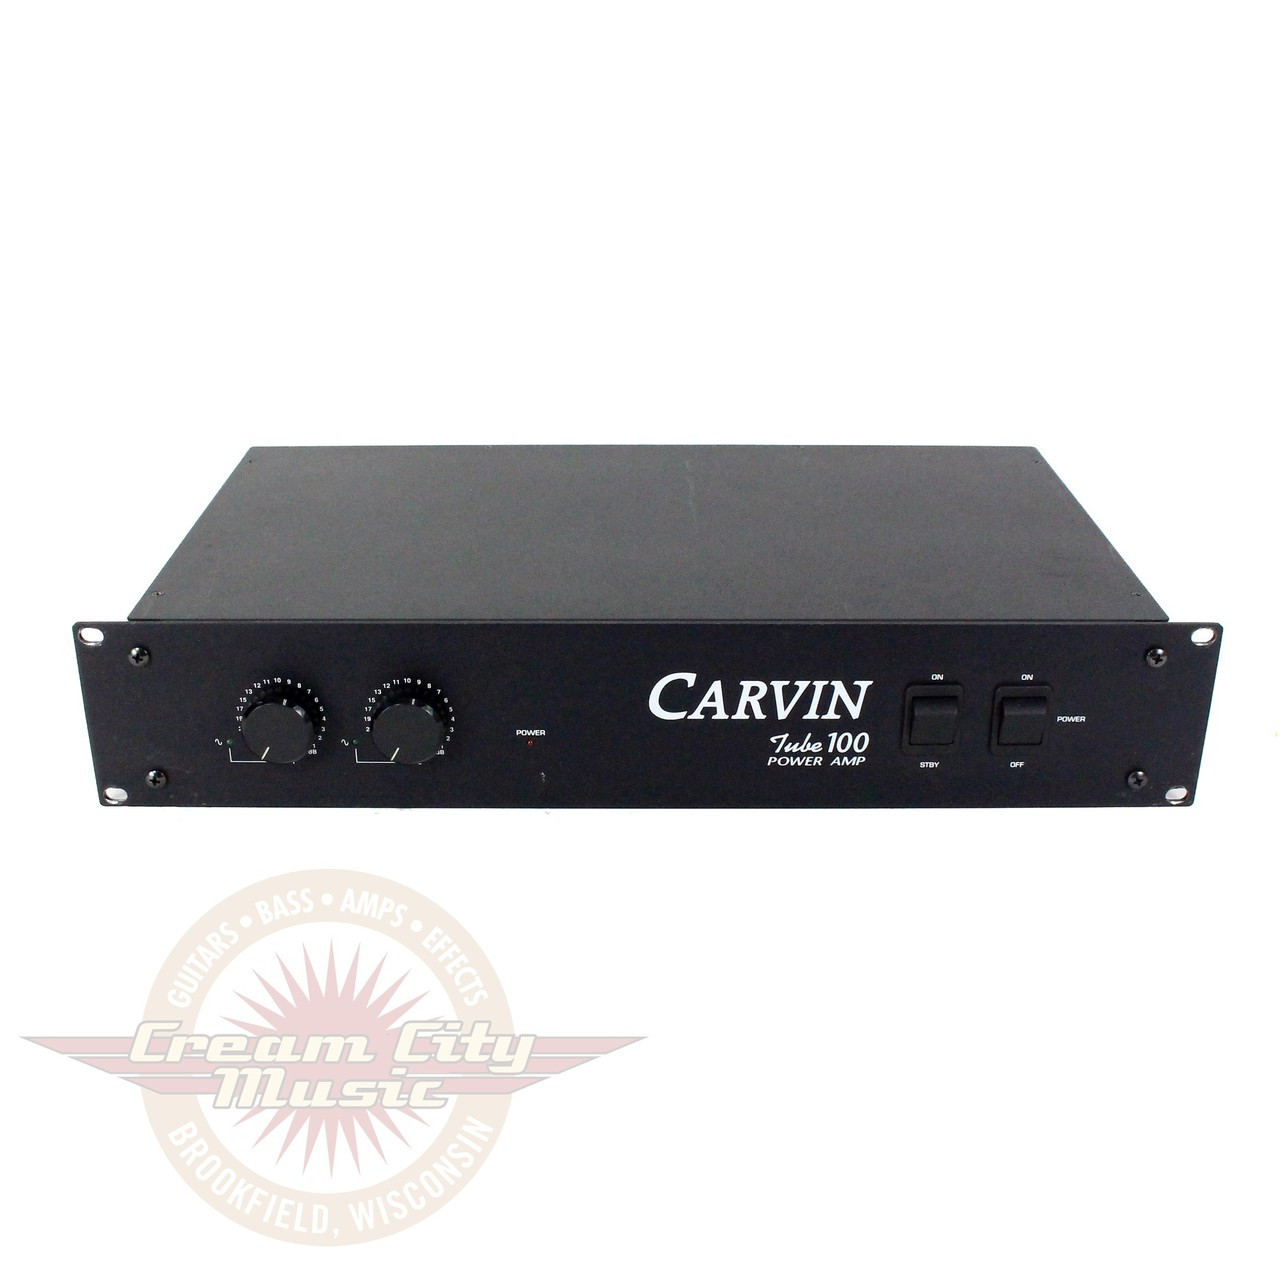 1990s Carvin T100 Tube 100 Stereo 100W Rackmount Power Amp